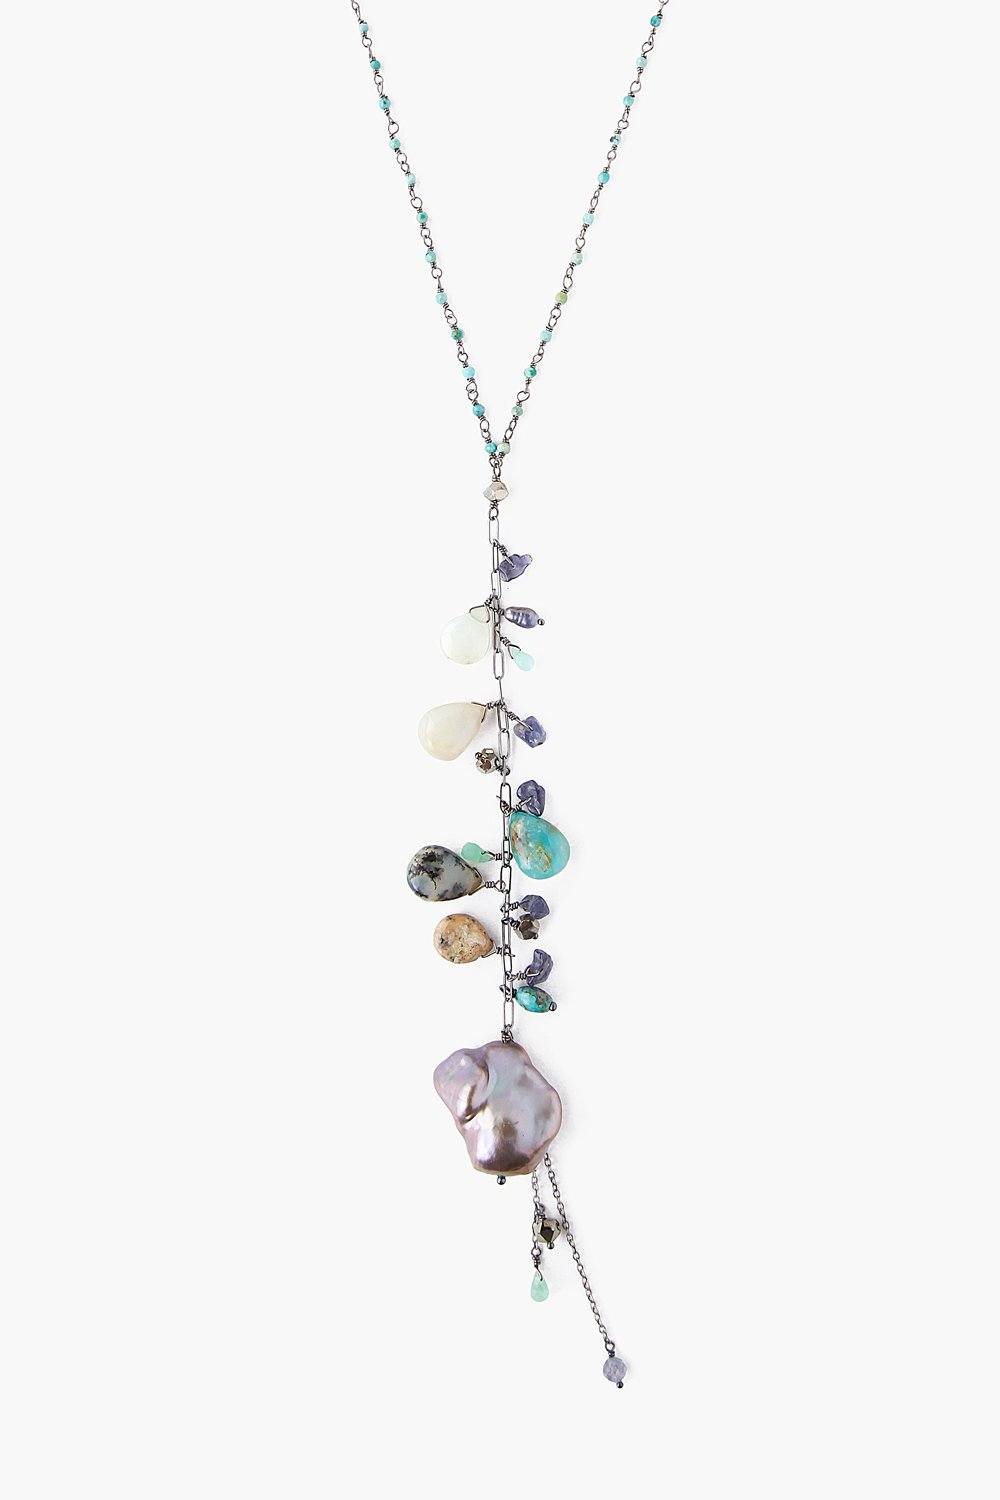 Turquoise Mix and Dark Champagne Baroque Pearl Necklace